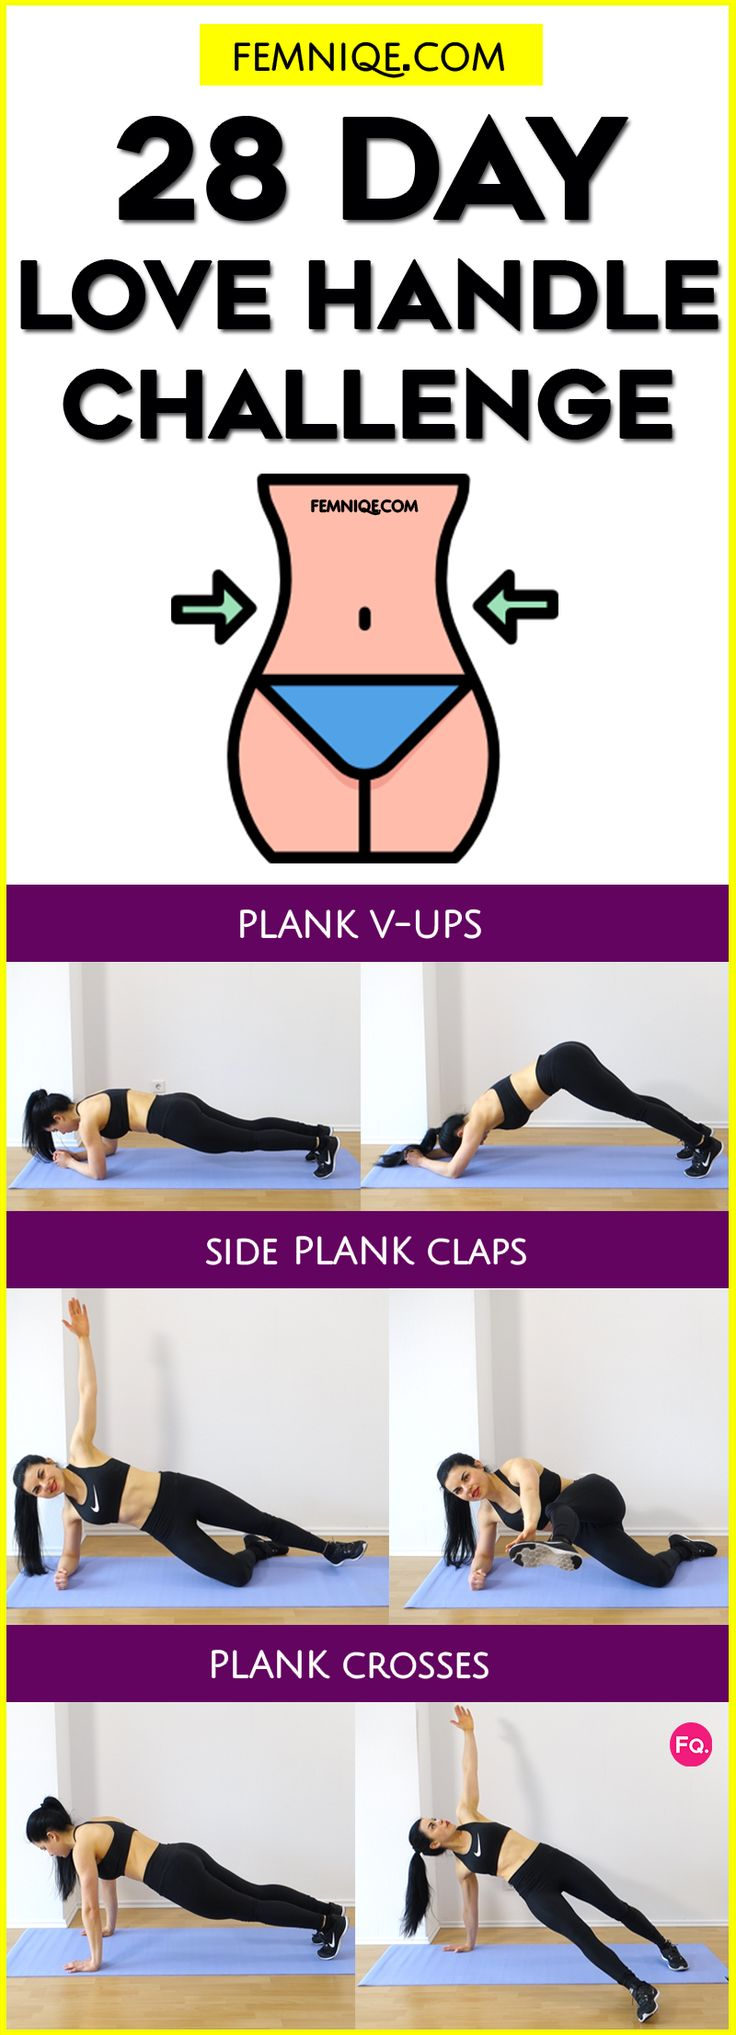 How To Get Rid of Love Handles (28 Day Plan) - If you want those love handles then, you should try this 28 day challenge. It perfect for those who want to get a smaller waist and shred excess lose muffin top!